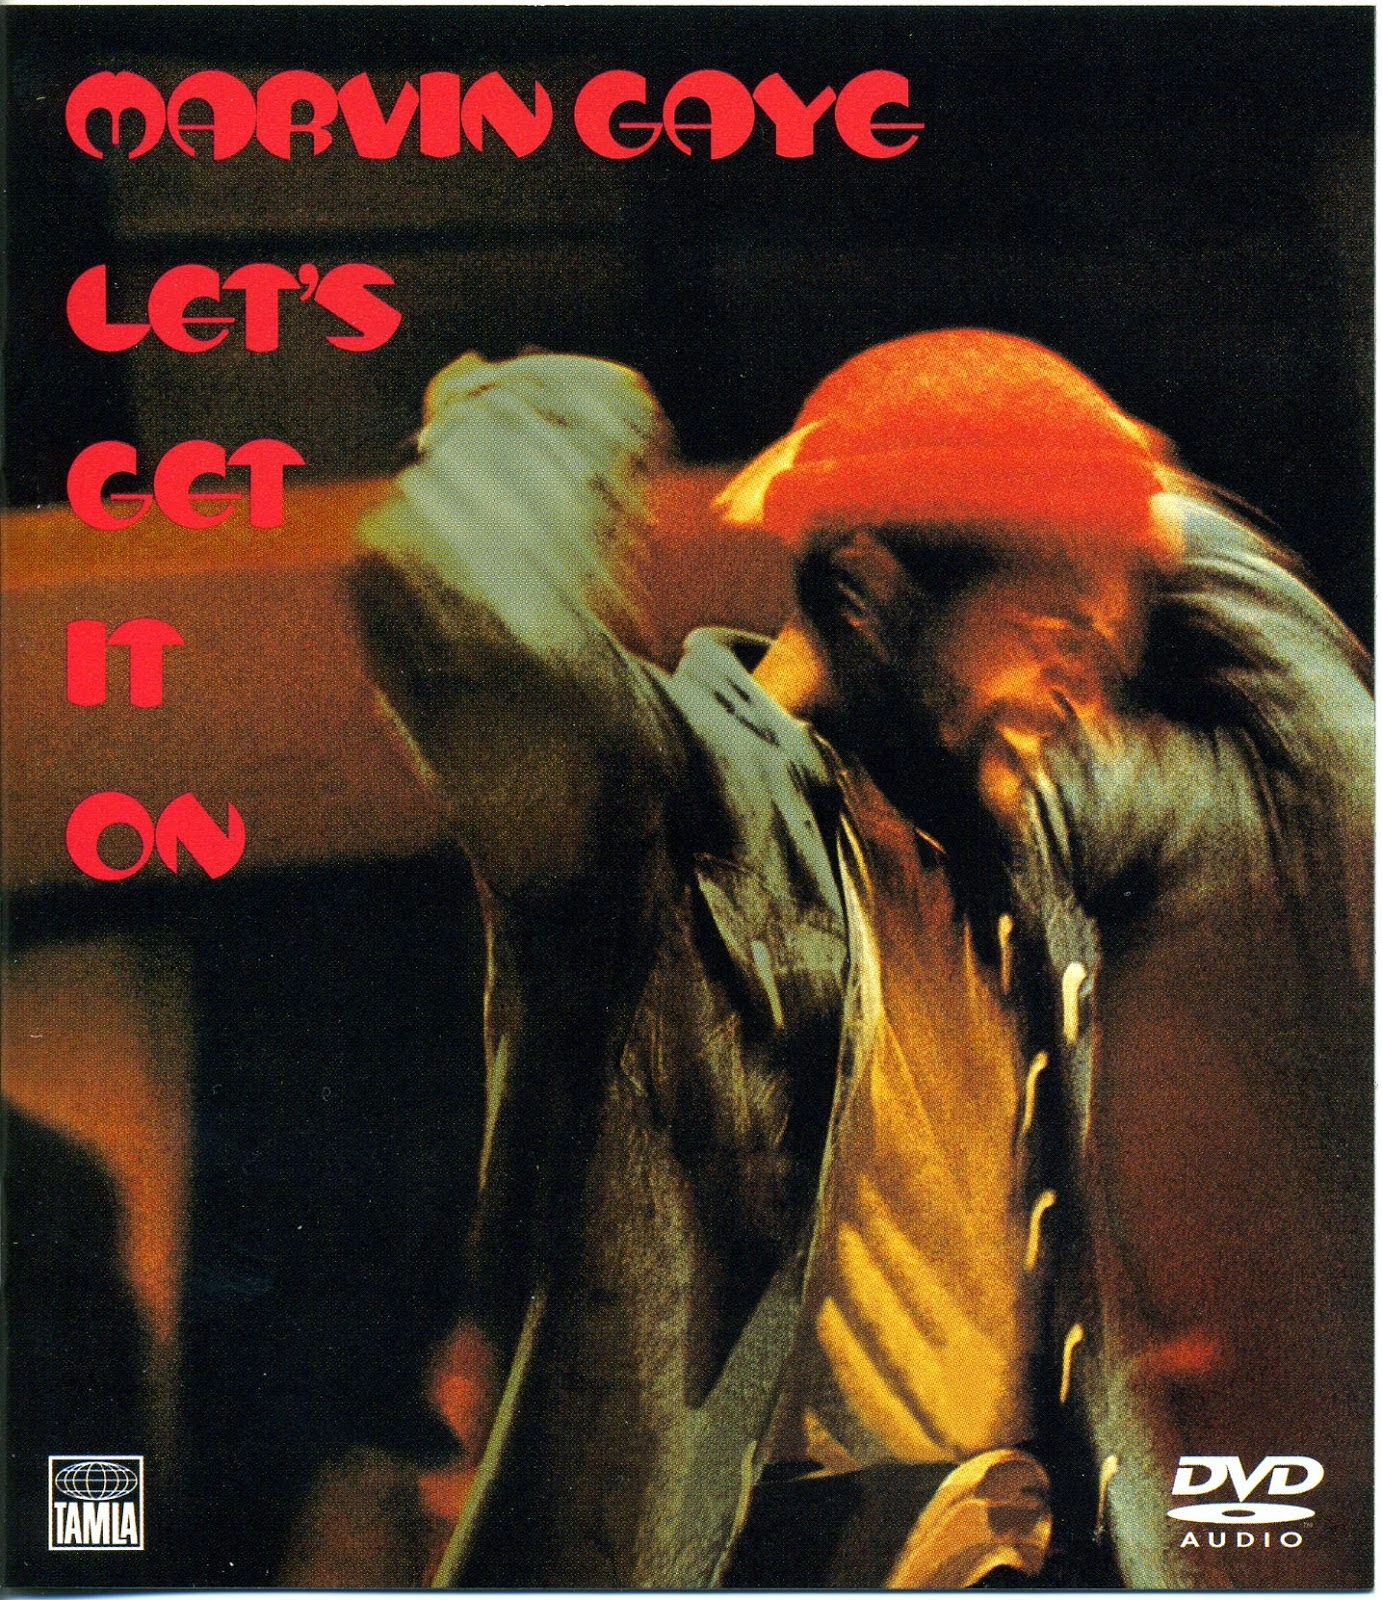 Marvin Gaye in red hat on cover of LP Let's Get it On